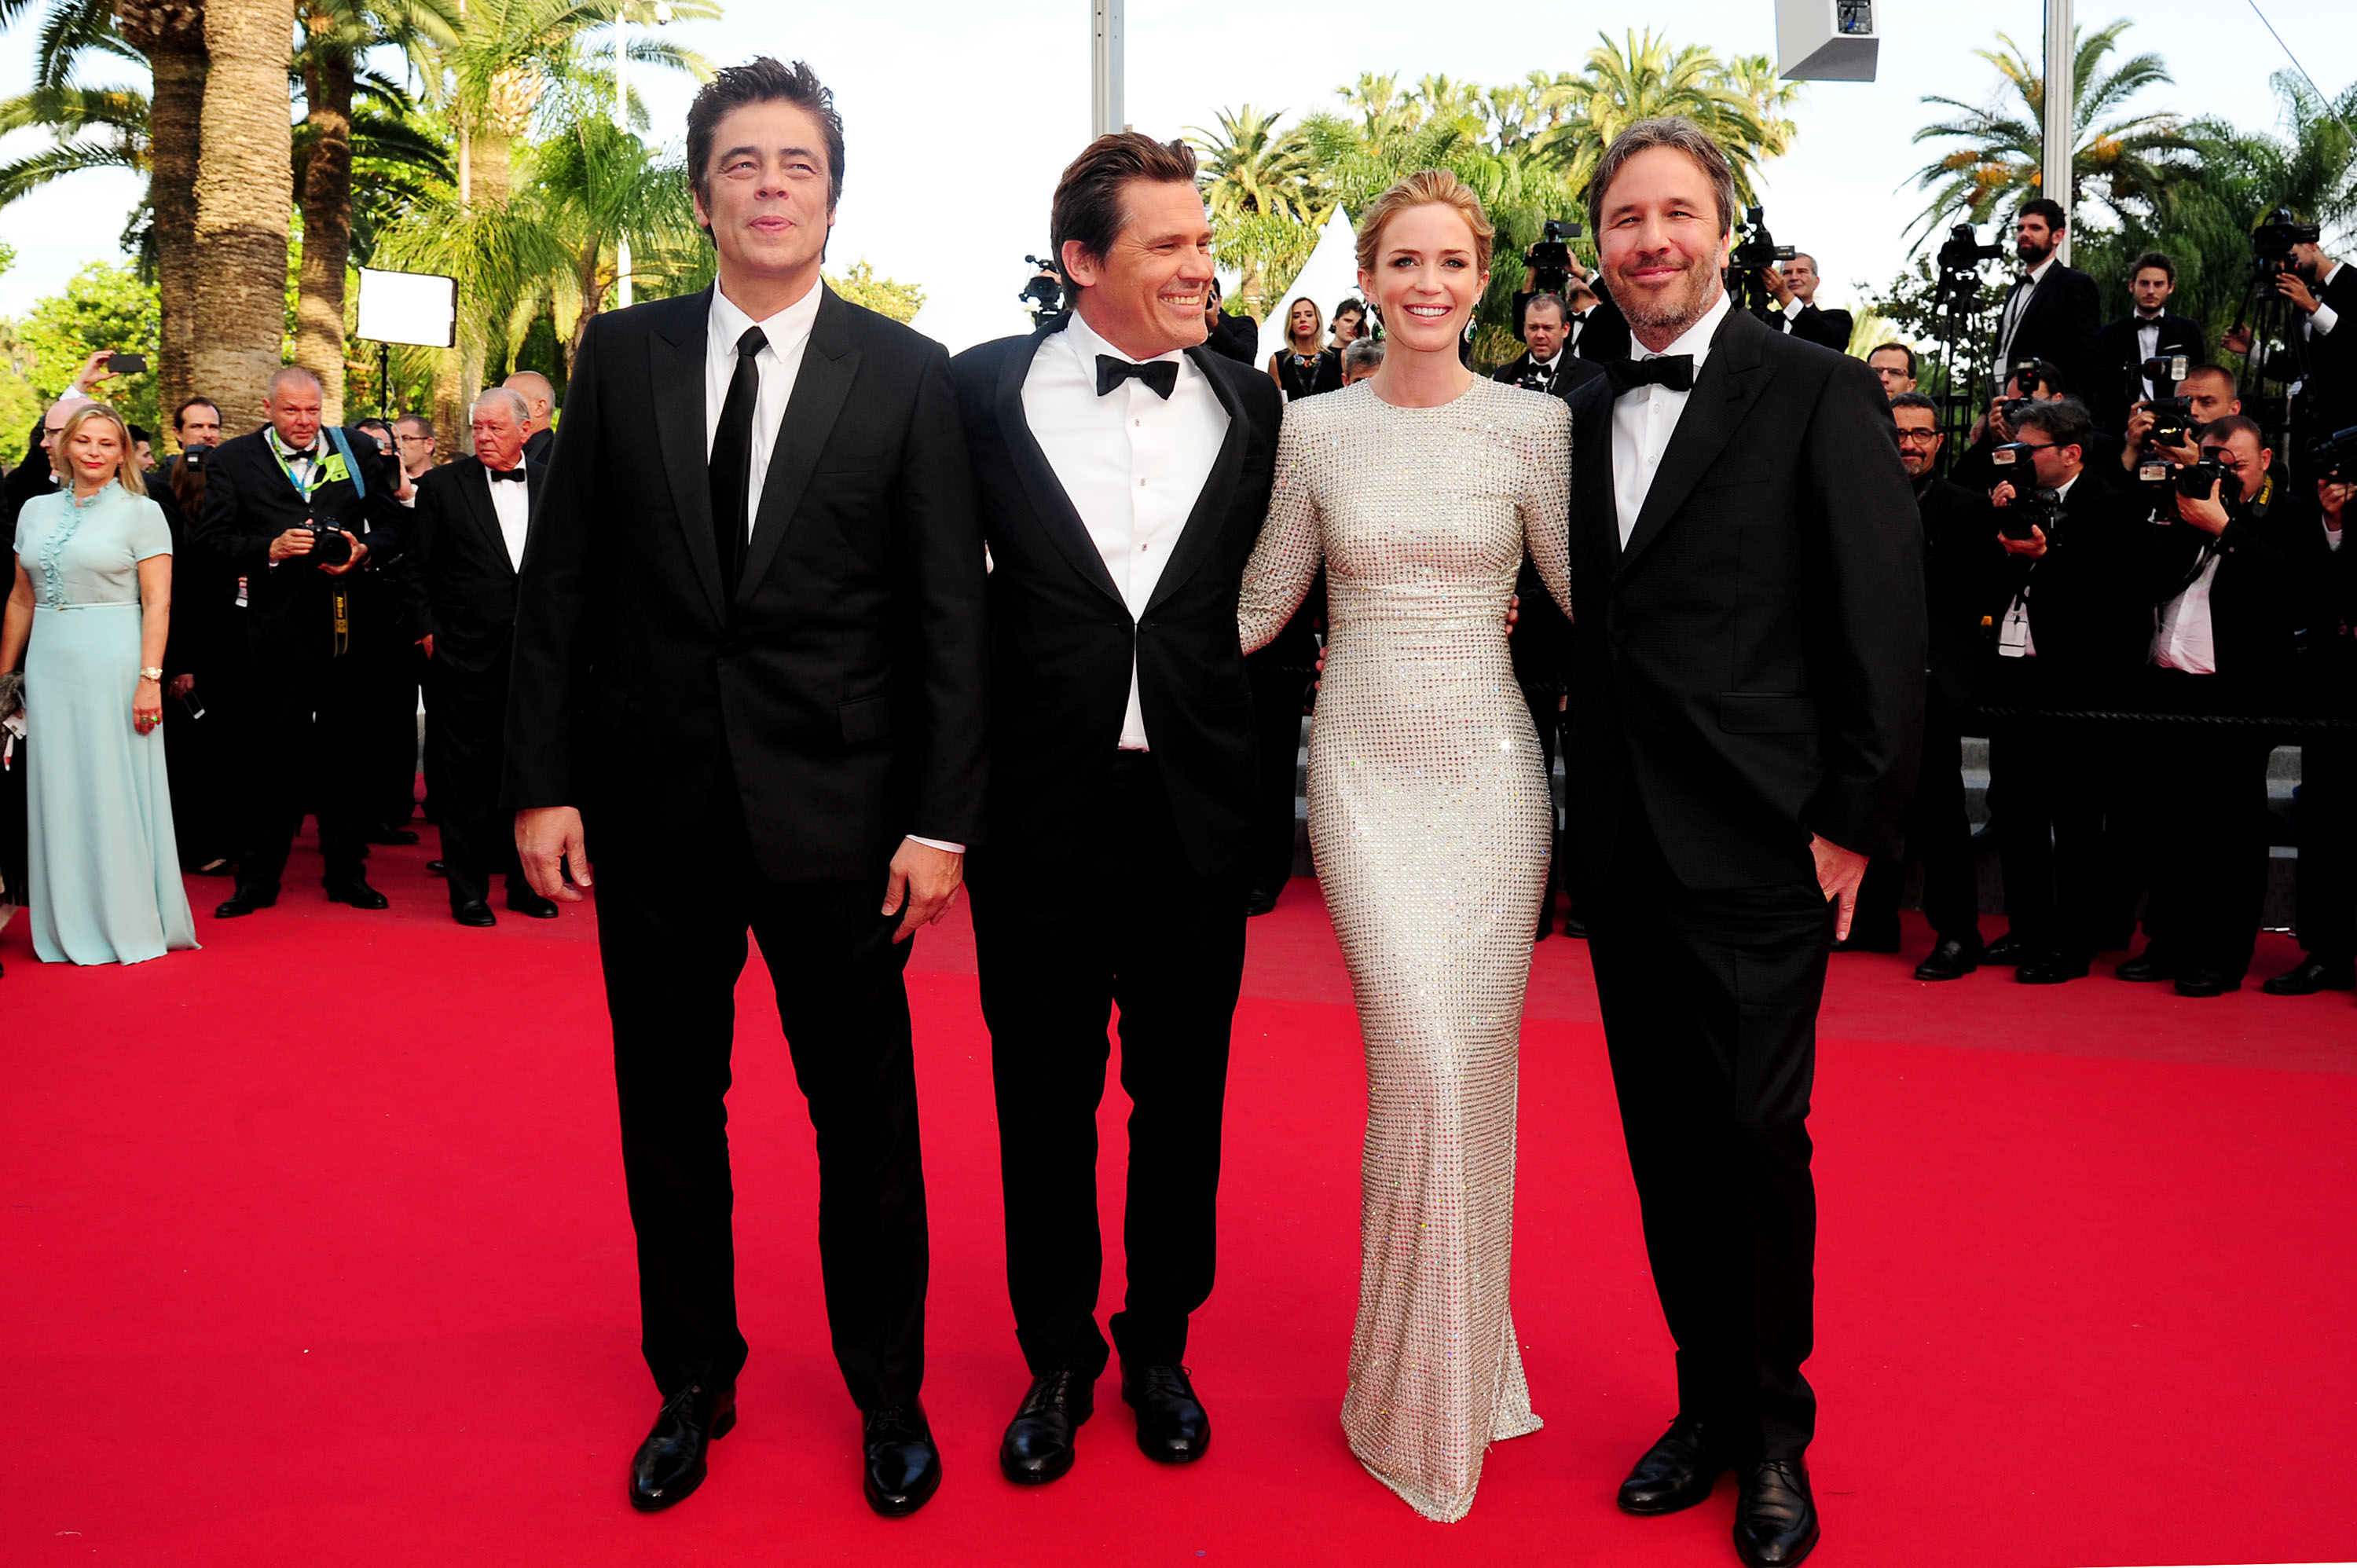 'Sicario' Red Carpet at the Palais Des Festivals During the 68th Cannes Film Festival Benicio Del Toro Josh Brolin Emily Blunt and Director Denis Villeneuve'The Lobster' Photocall - 19 May 2015